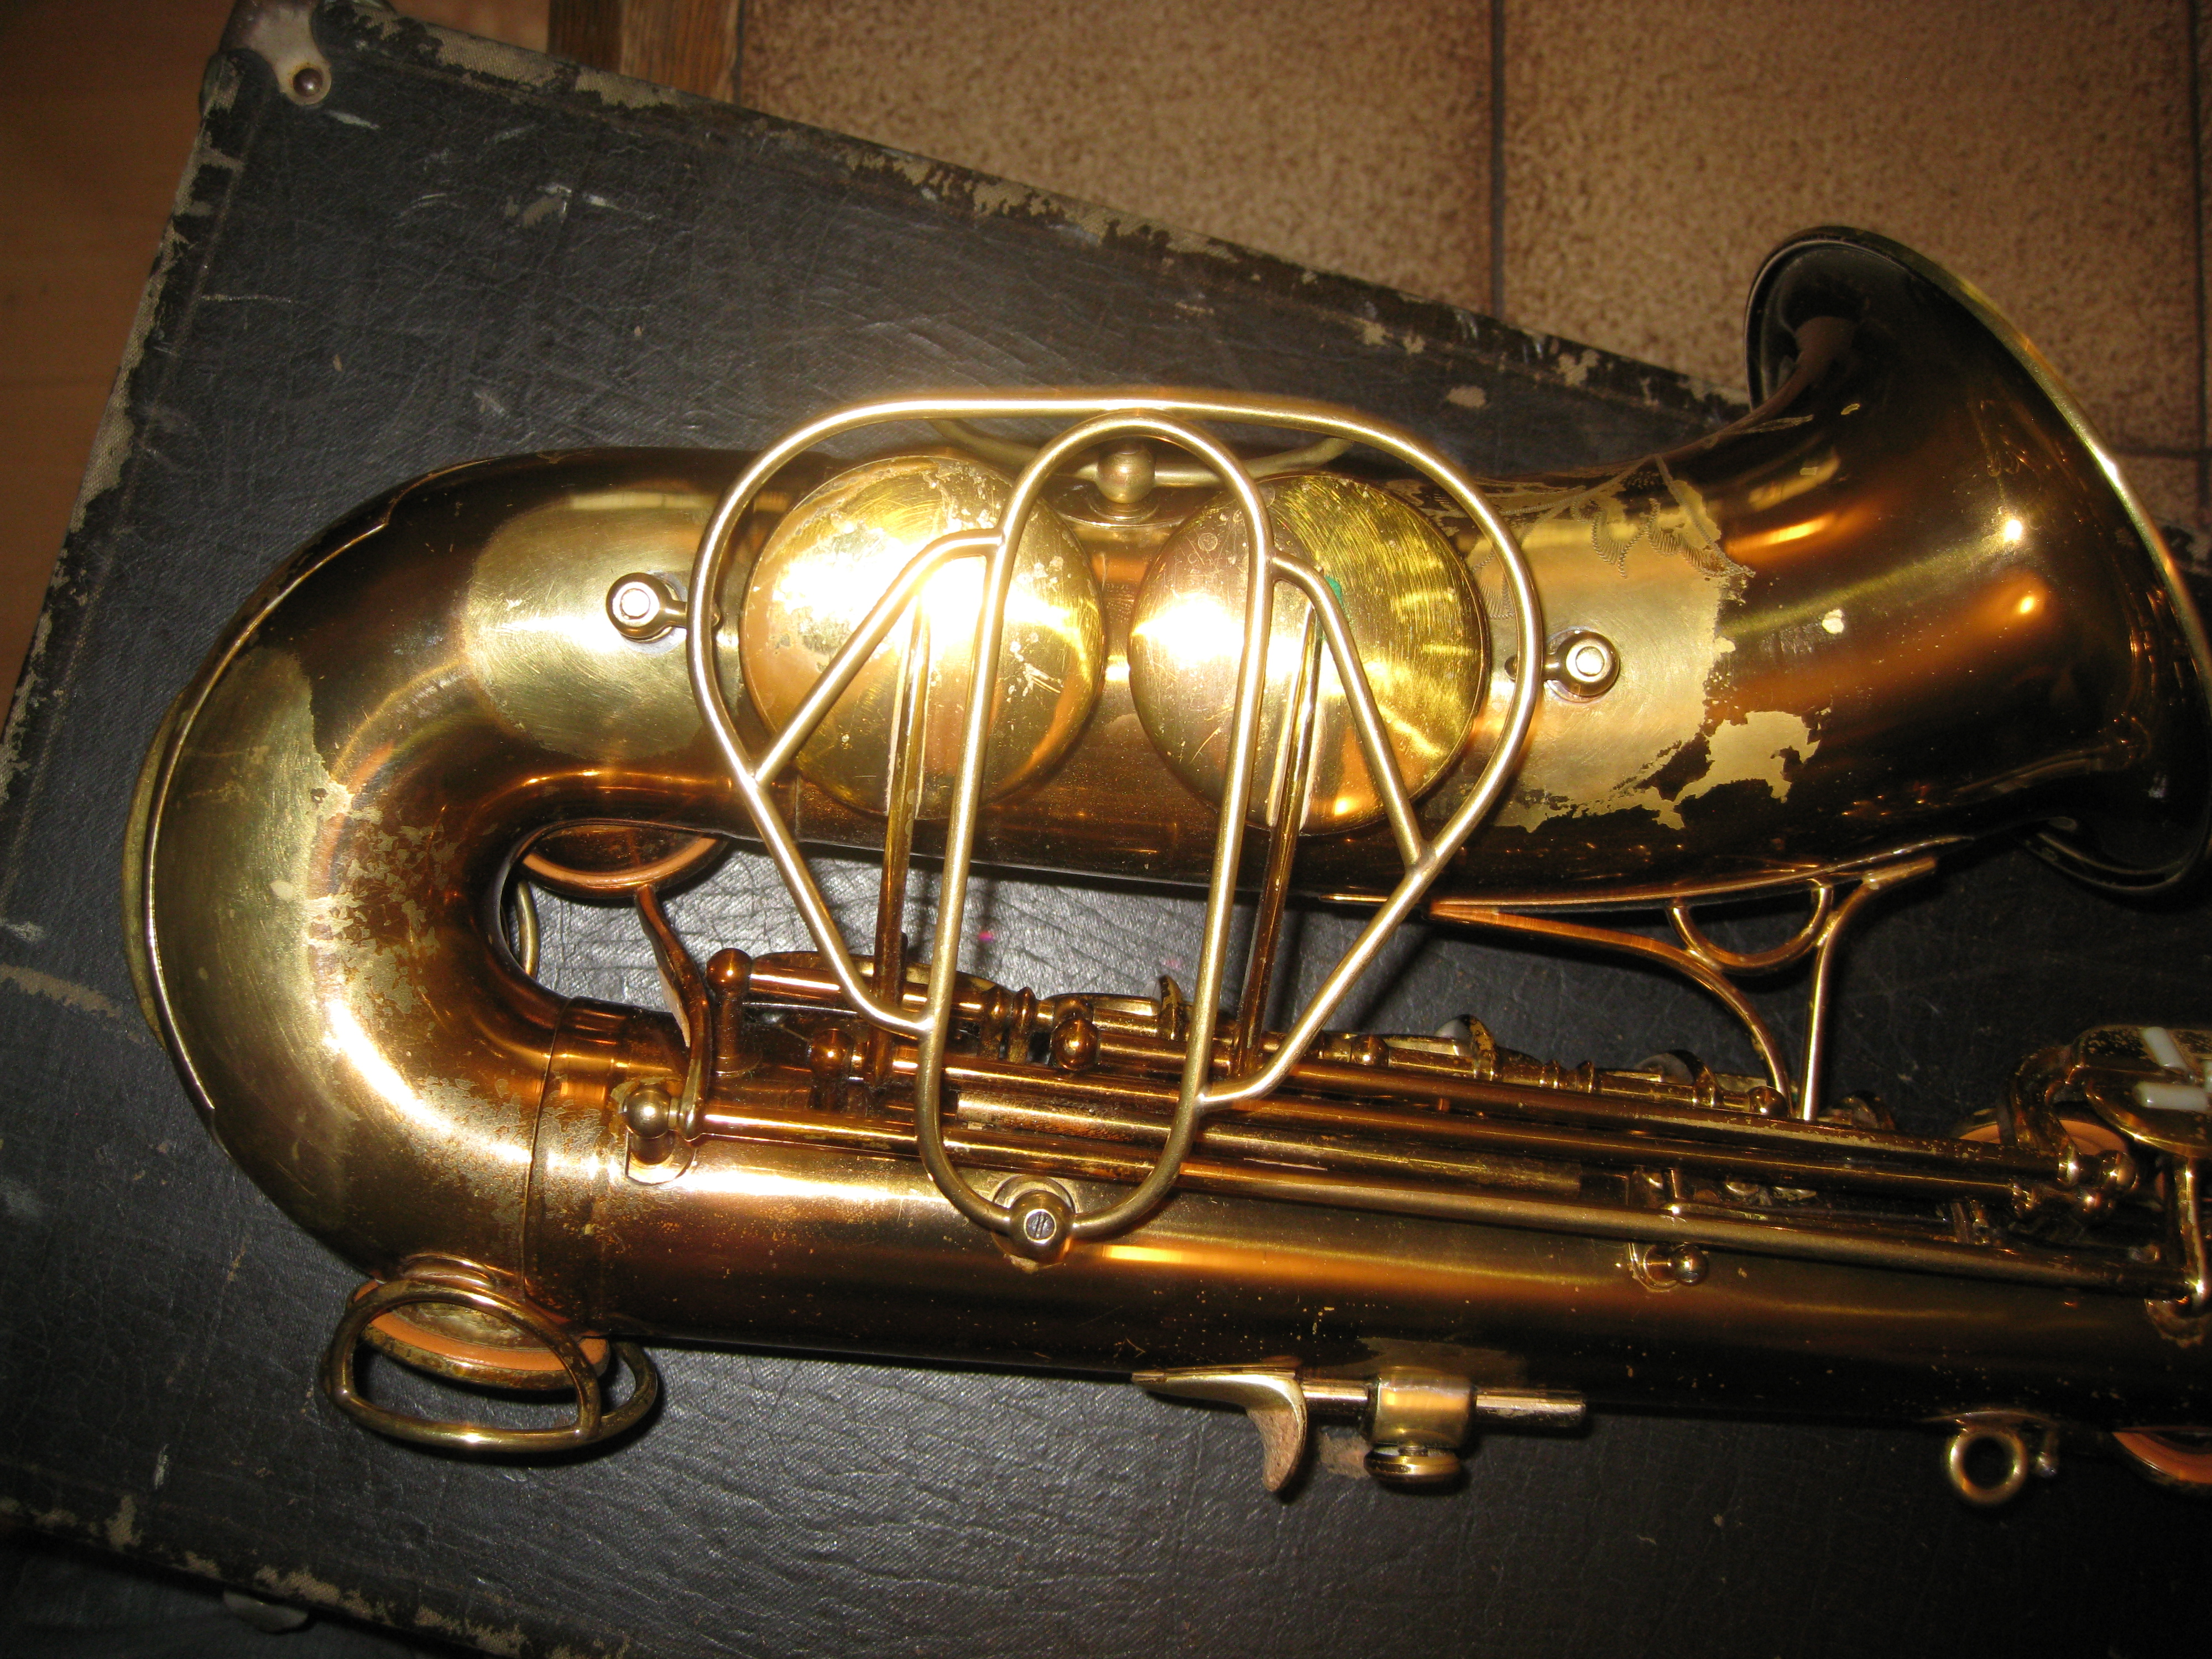 Martin indiana sax serial numbers